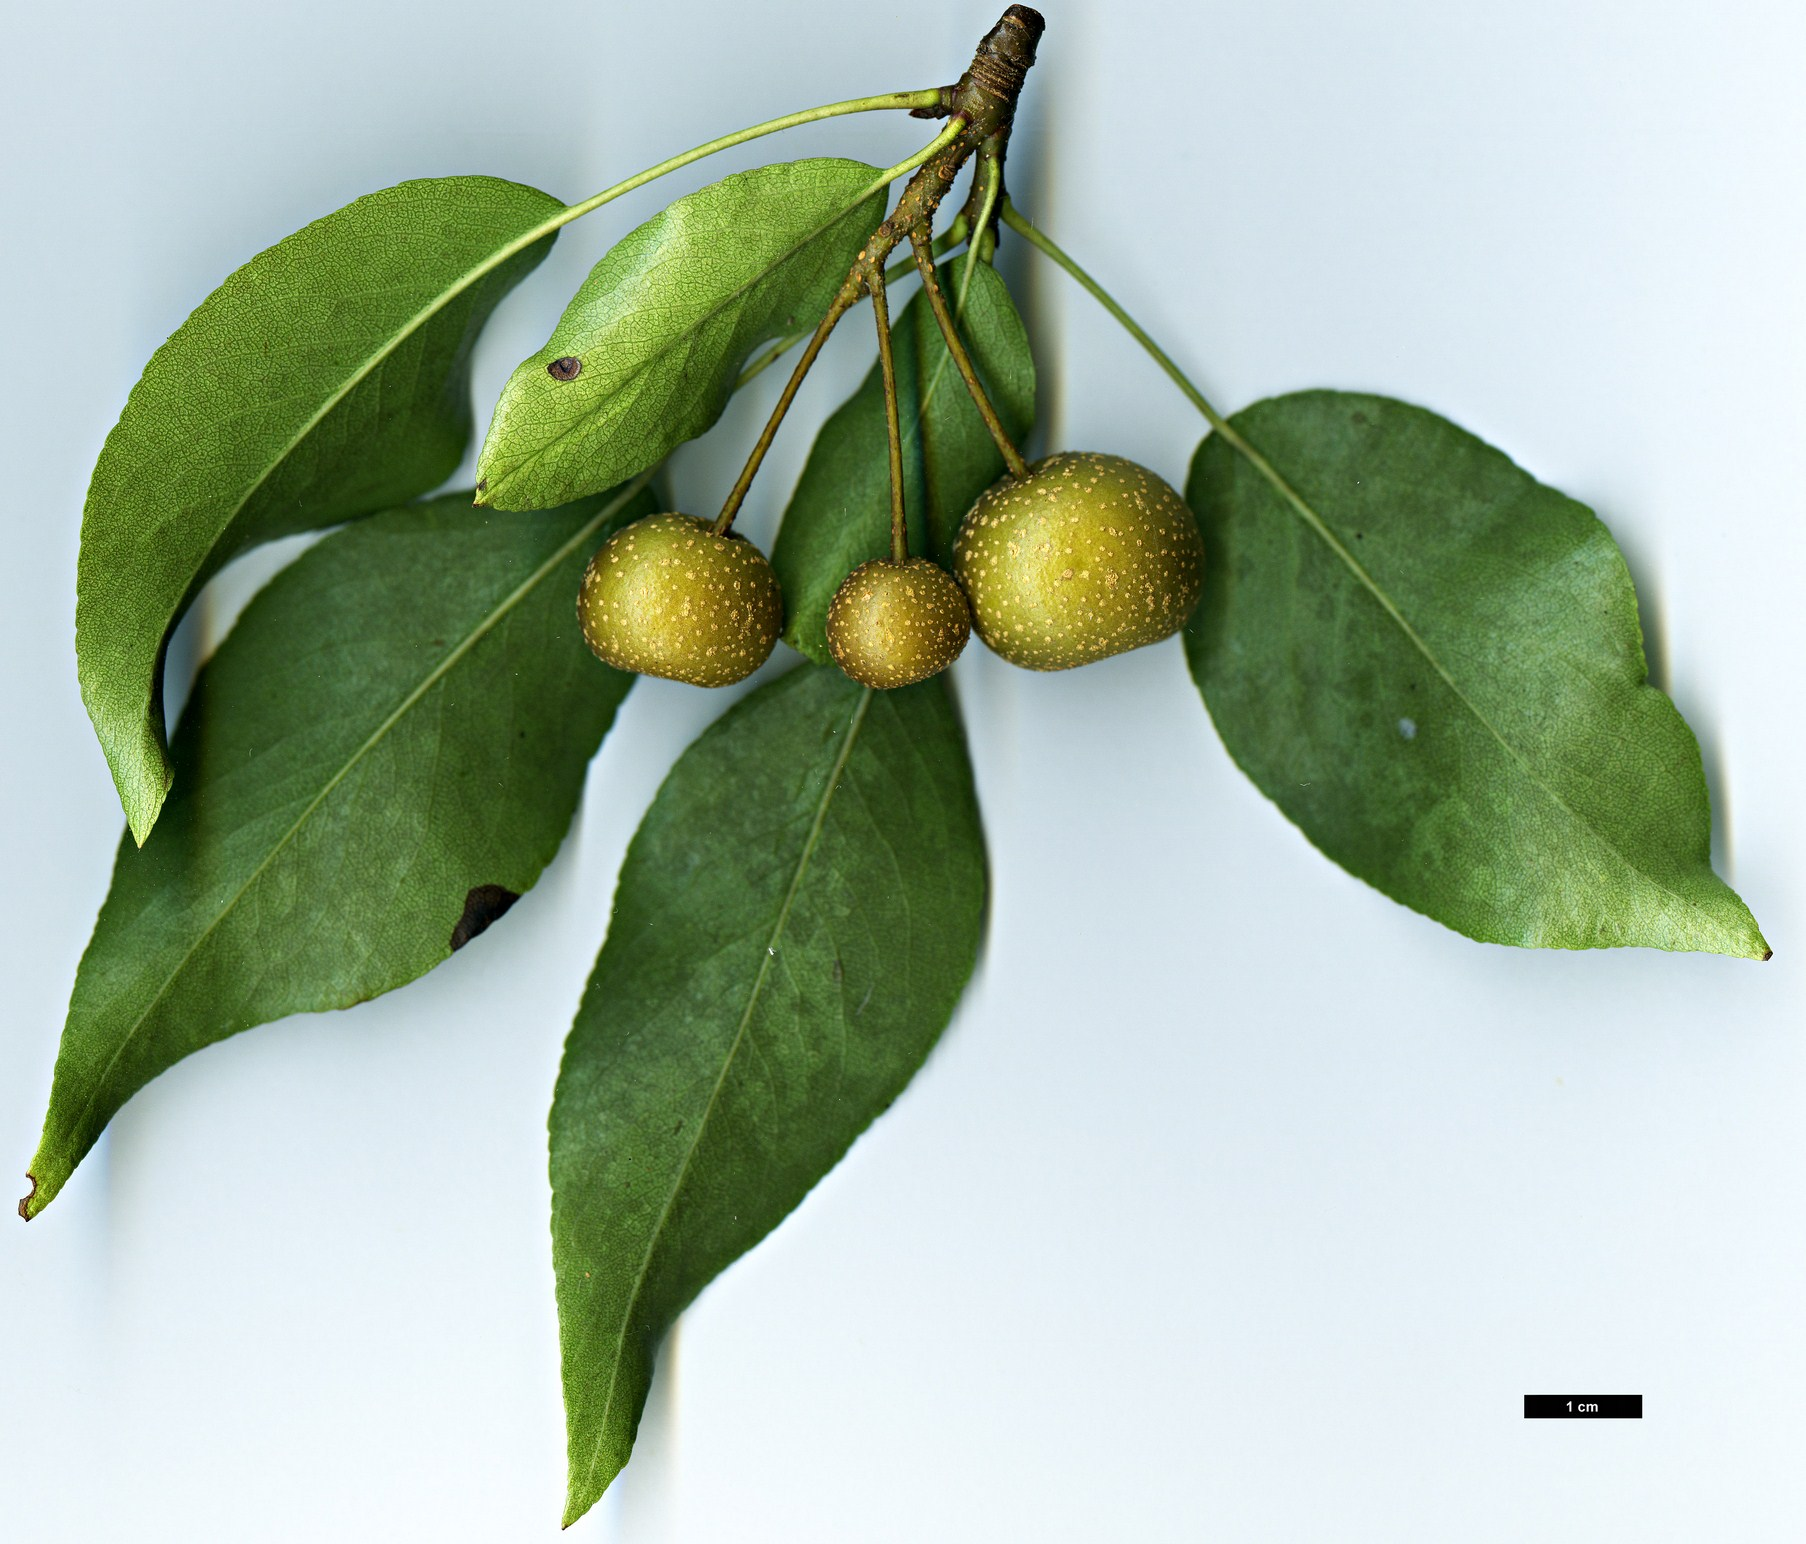 High resolution image: Family: Rosaceae - Genus: Pyrus - Taxon: pashia